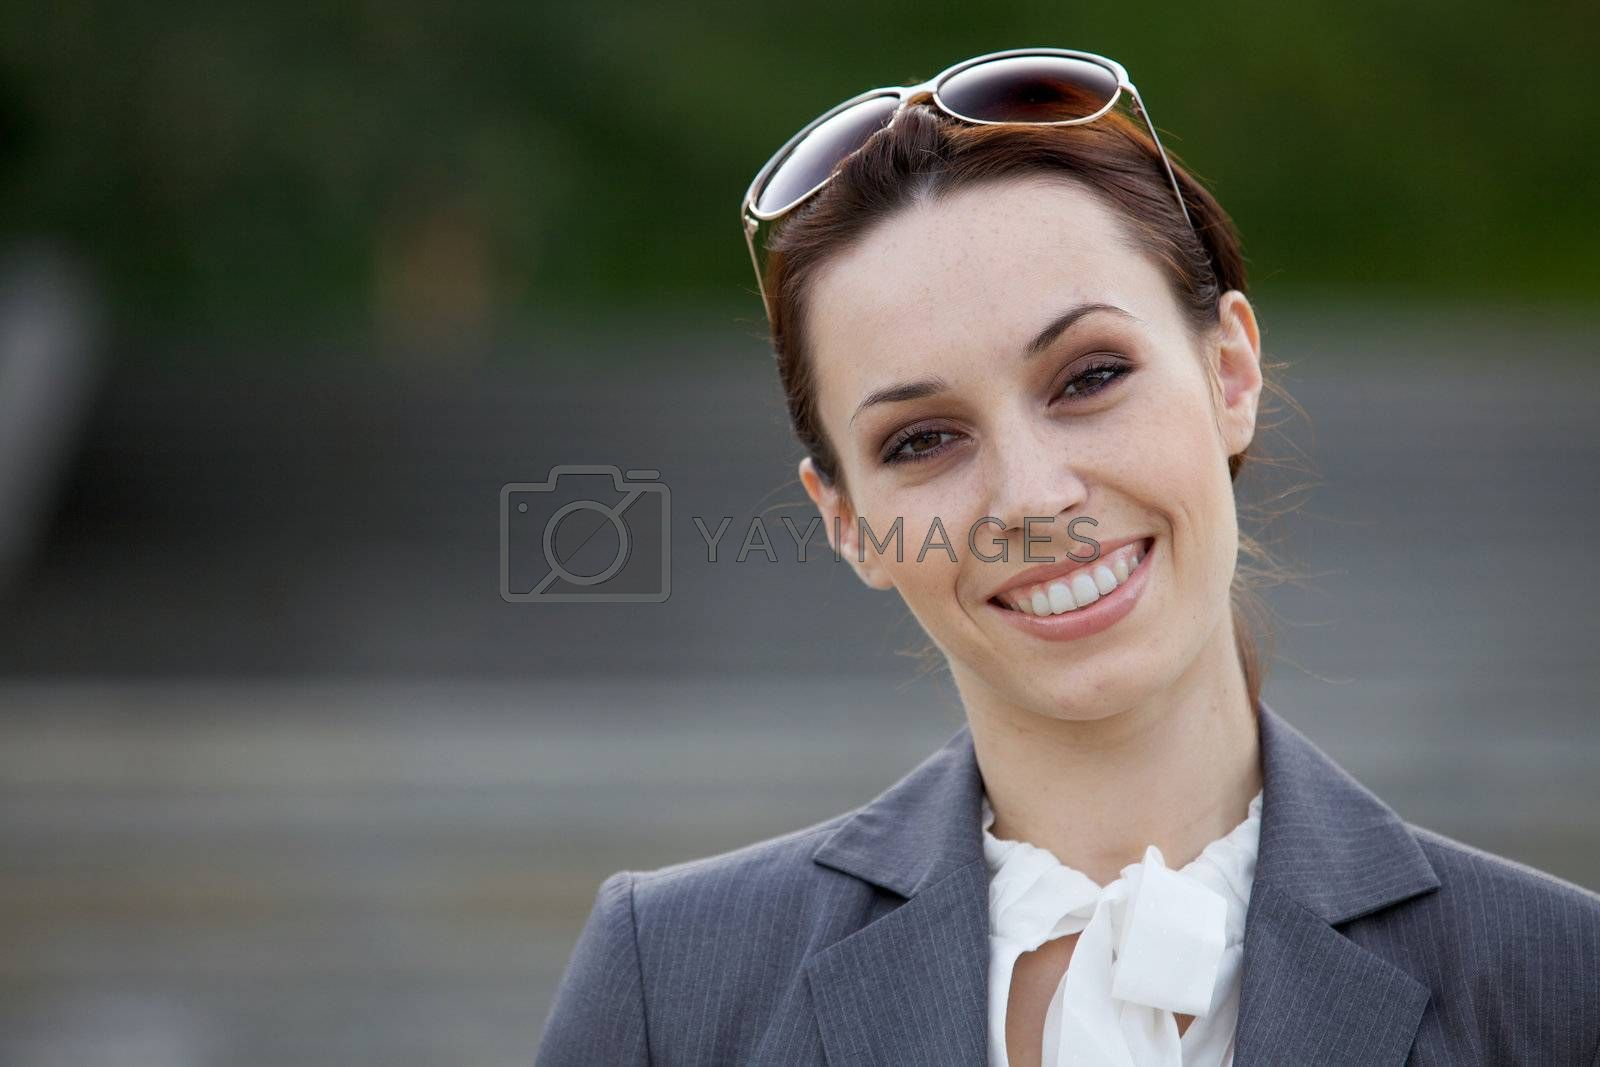 Portrait of a young businesswoman smiling